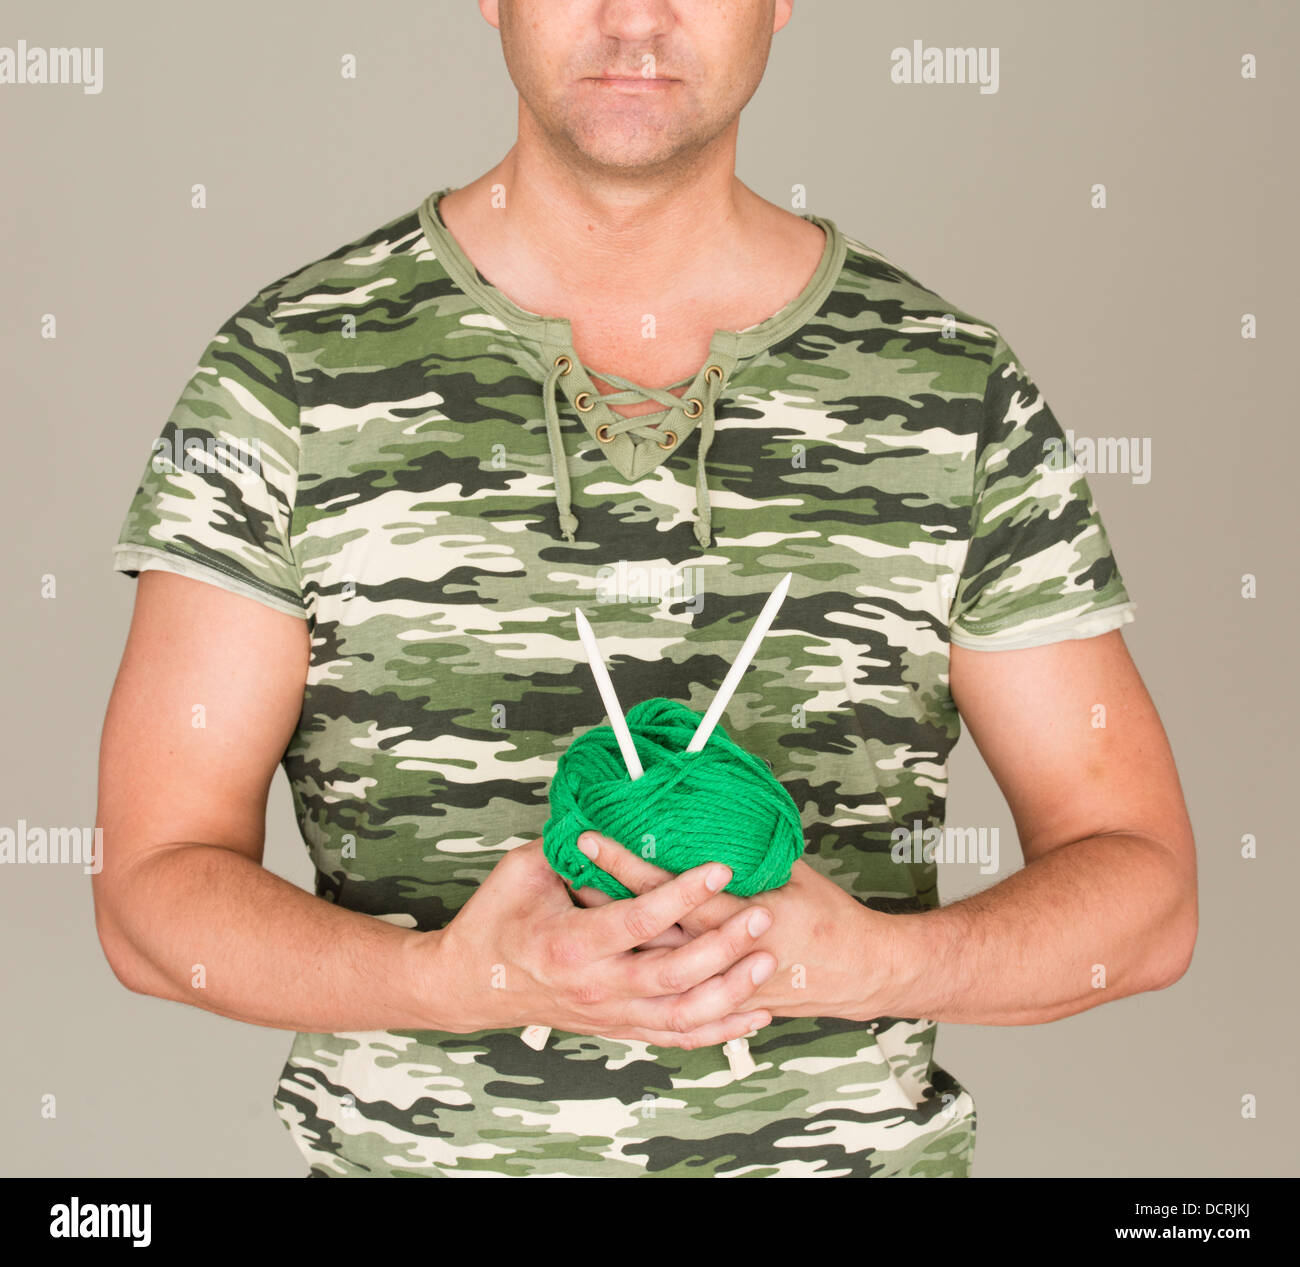 Man with camouflage t-shirt looking puzzled at a ball of yarn and knitting needles - Stock Image